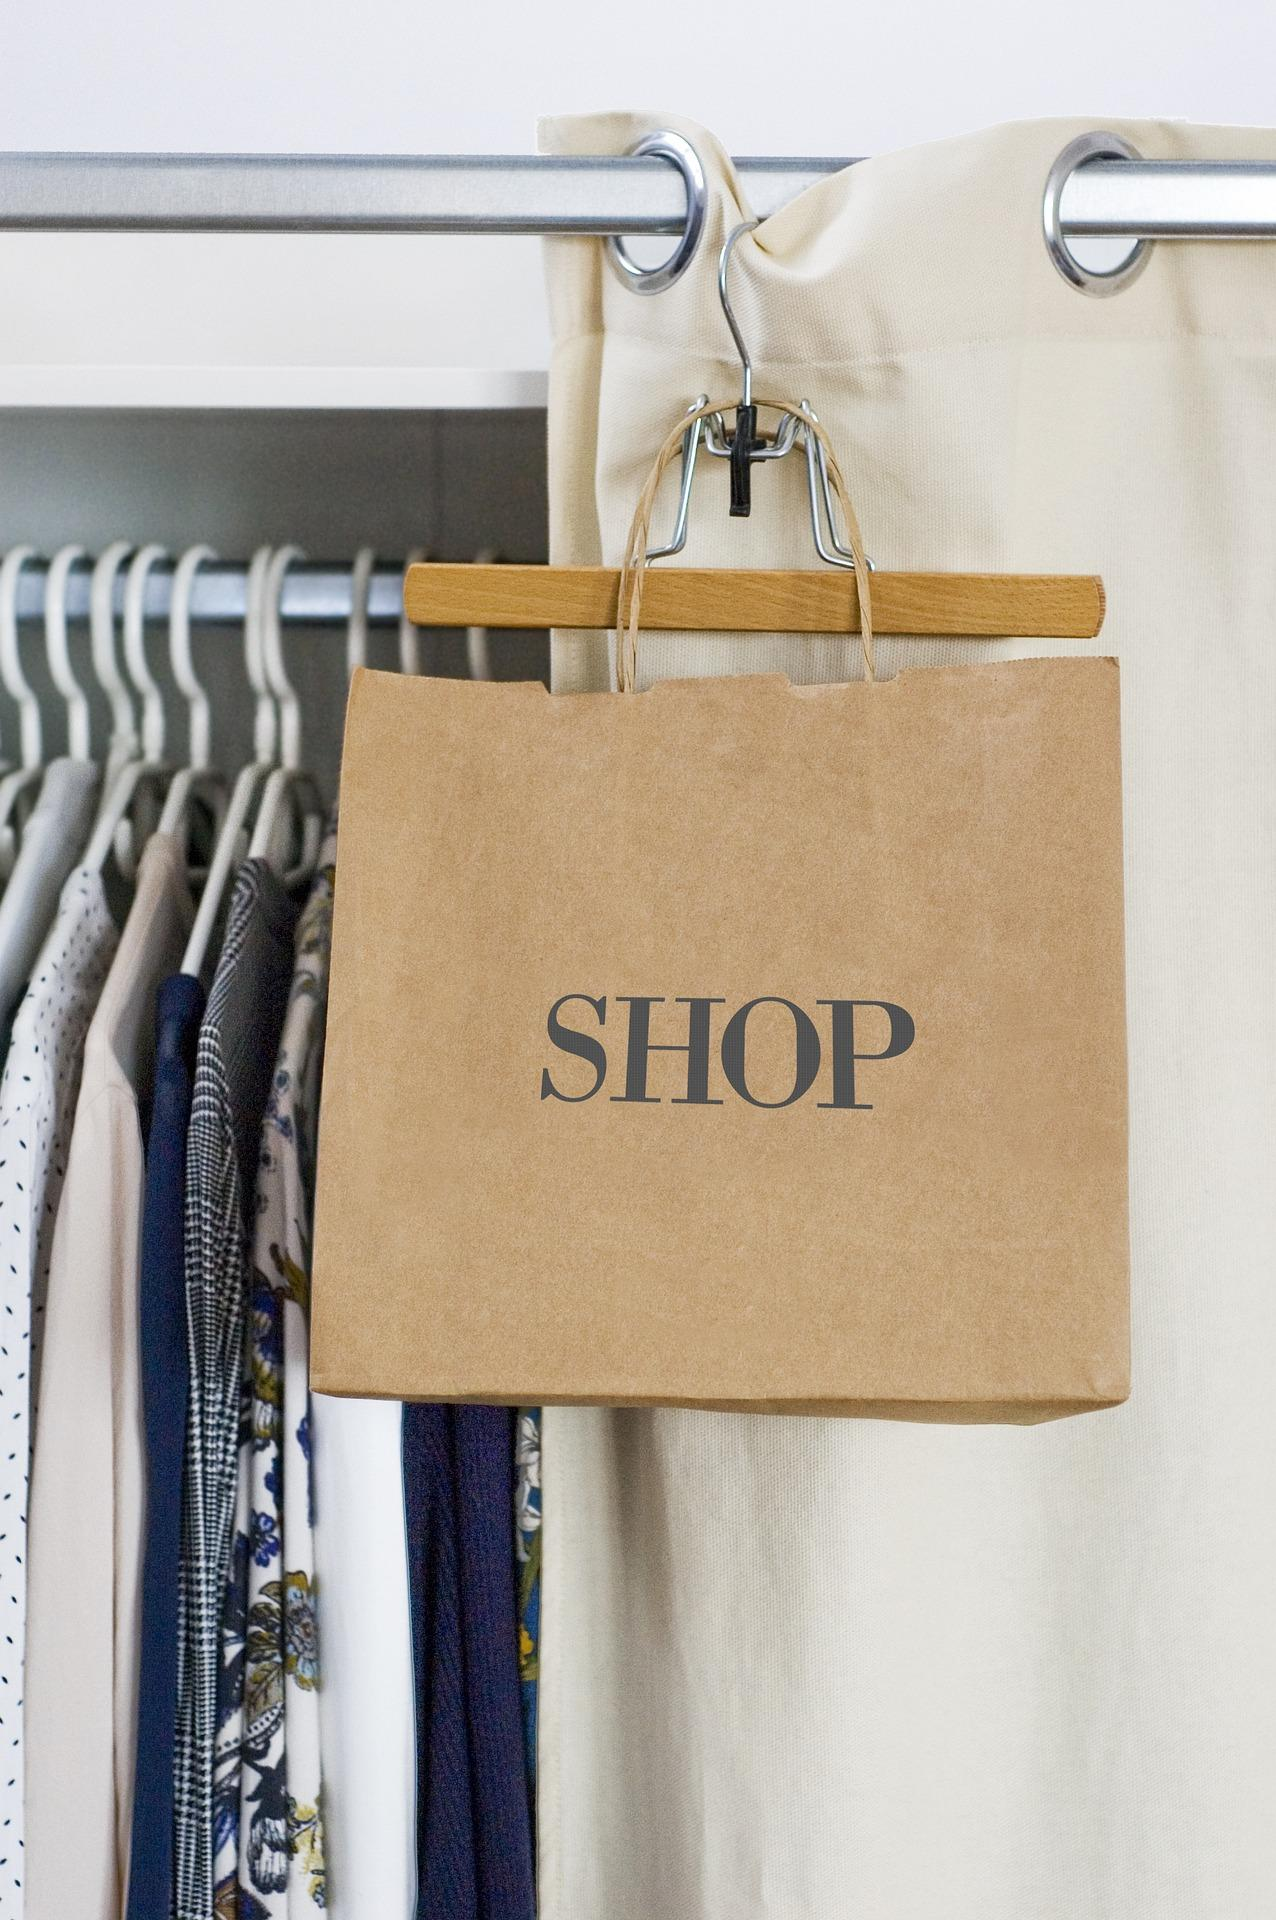 Picture of a shopping bag in a shop